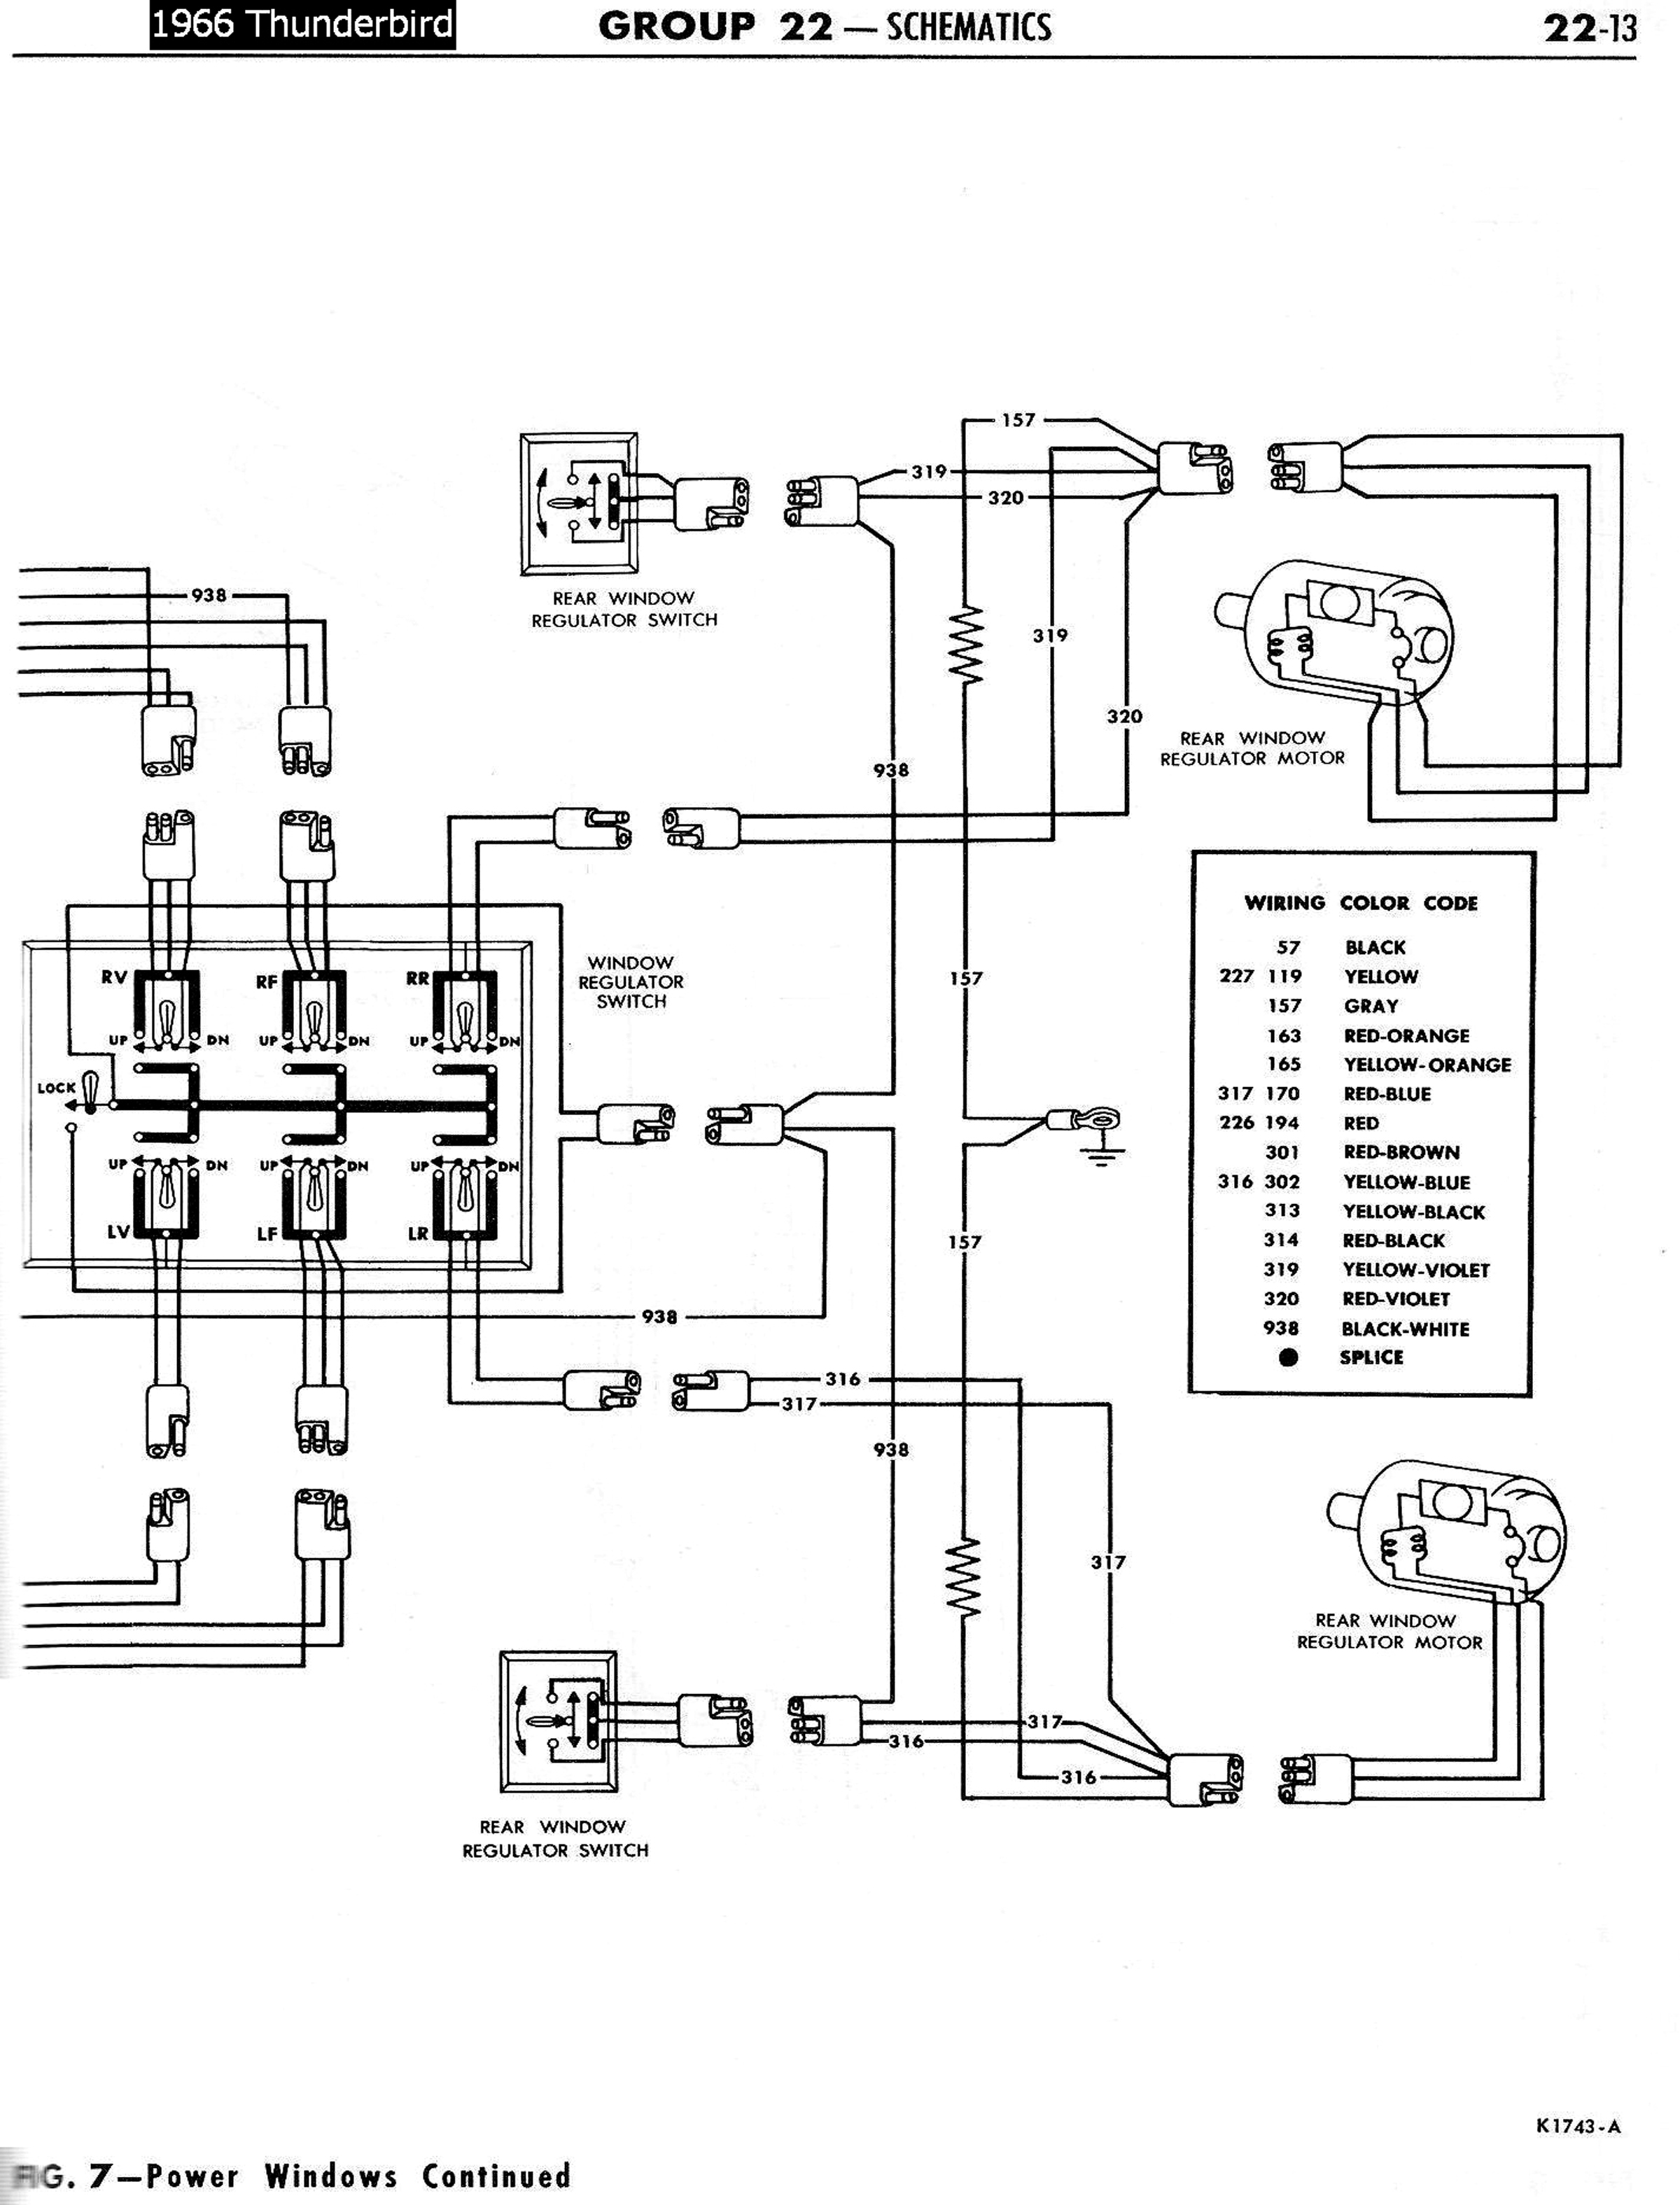 1955 Thunderbird Wiring Diagram Data For Turn Signals 1968 1959 Ford F100